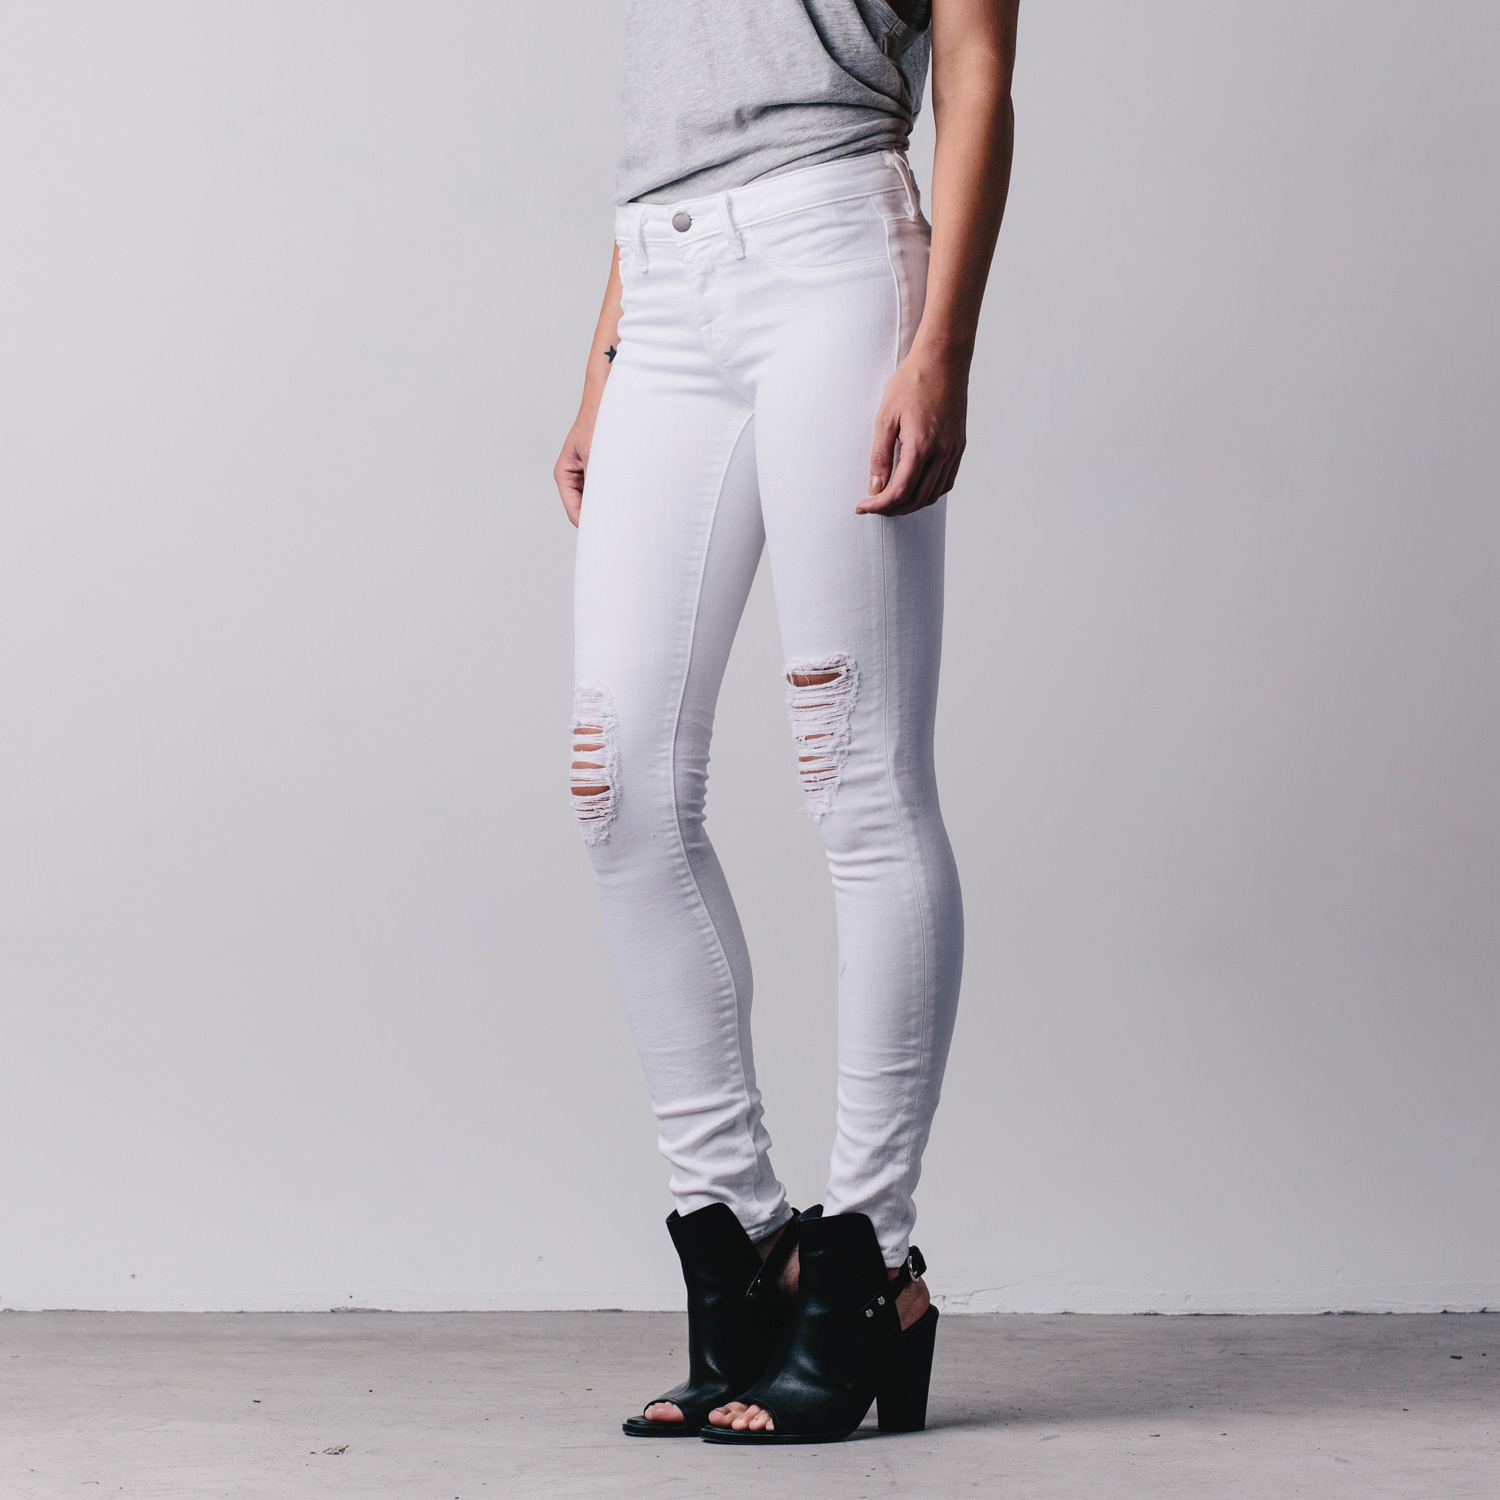 Womens Ripped Mid Rise Skinny Jeans In White | DSTLD Premium Denim ...